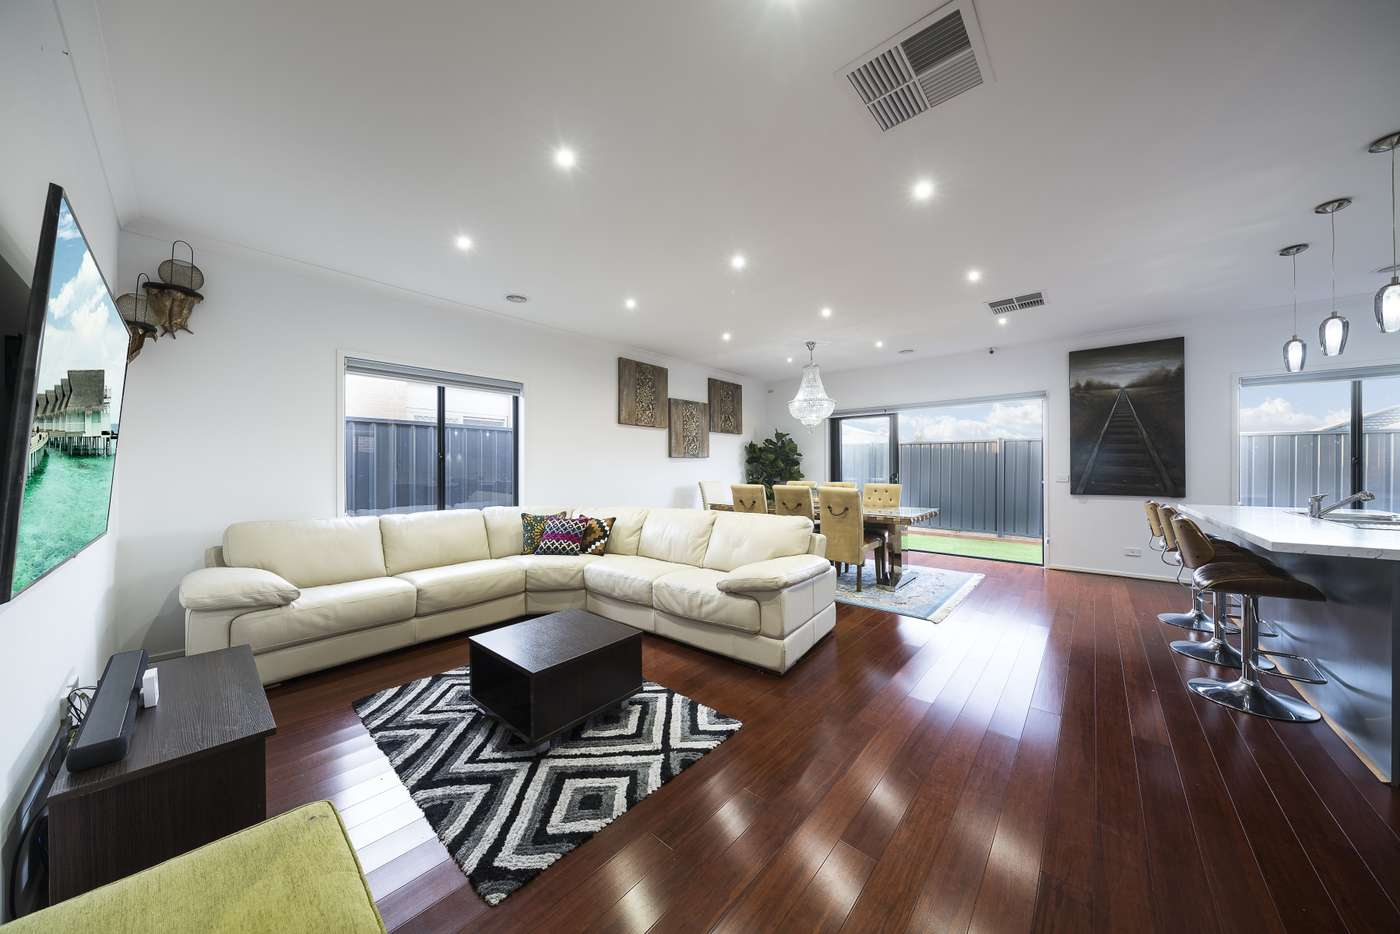 Sixth view of Homely house listing, 27 Observation Way, Roxburgh Park VIC 3064